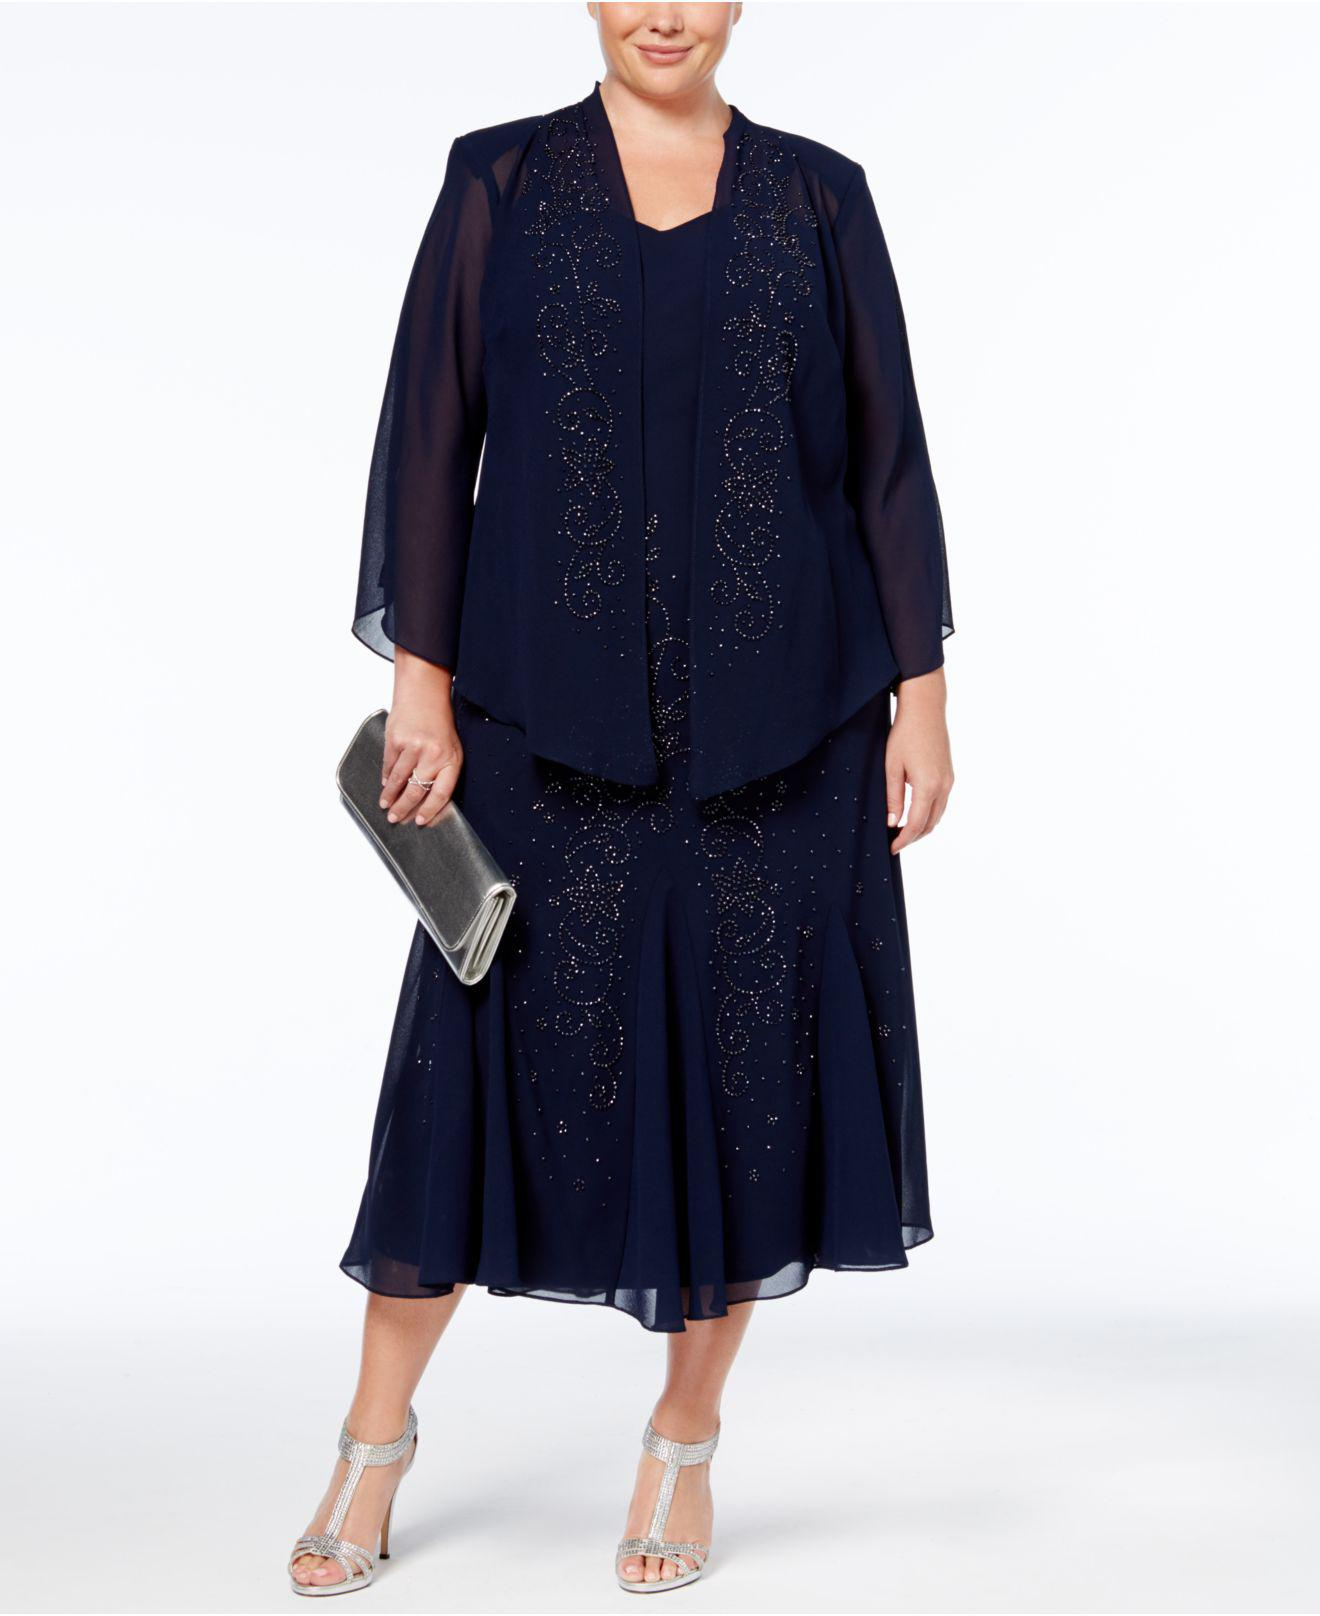 R & M Richards Plus Size Dress And Jacket, Bead Embellished in Blue ...